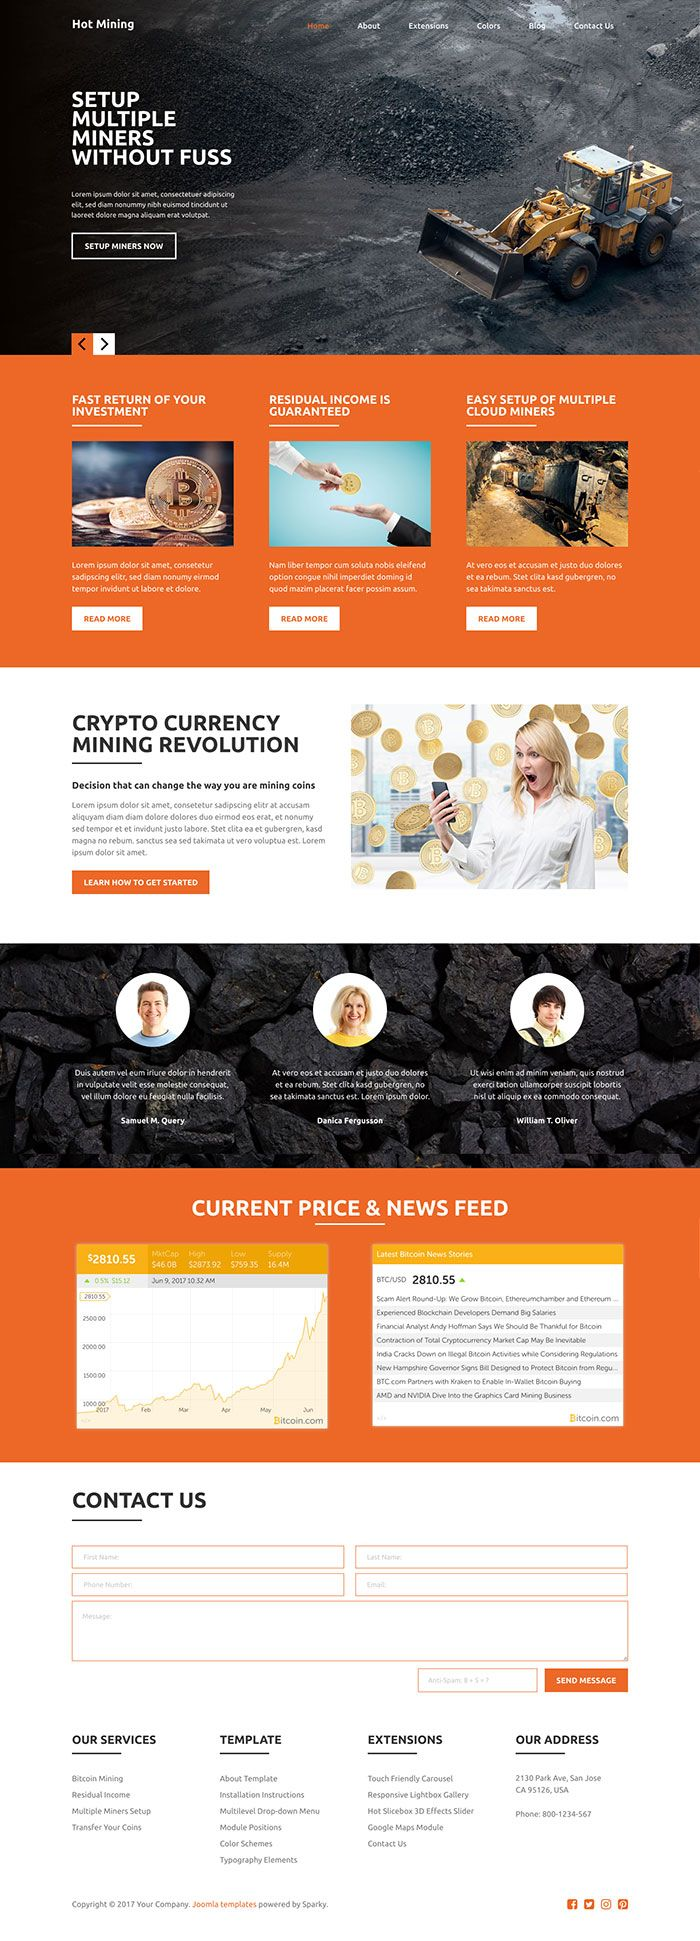 Hot Mining - Joomla Template Screenshot 3